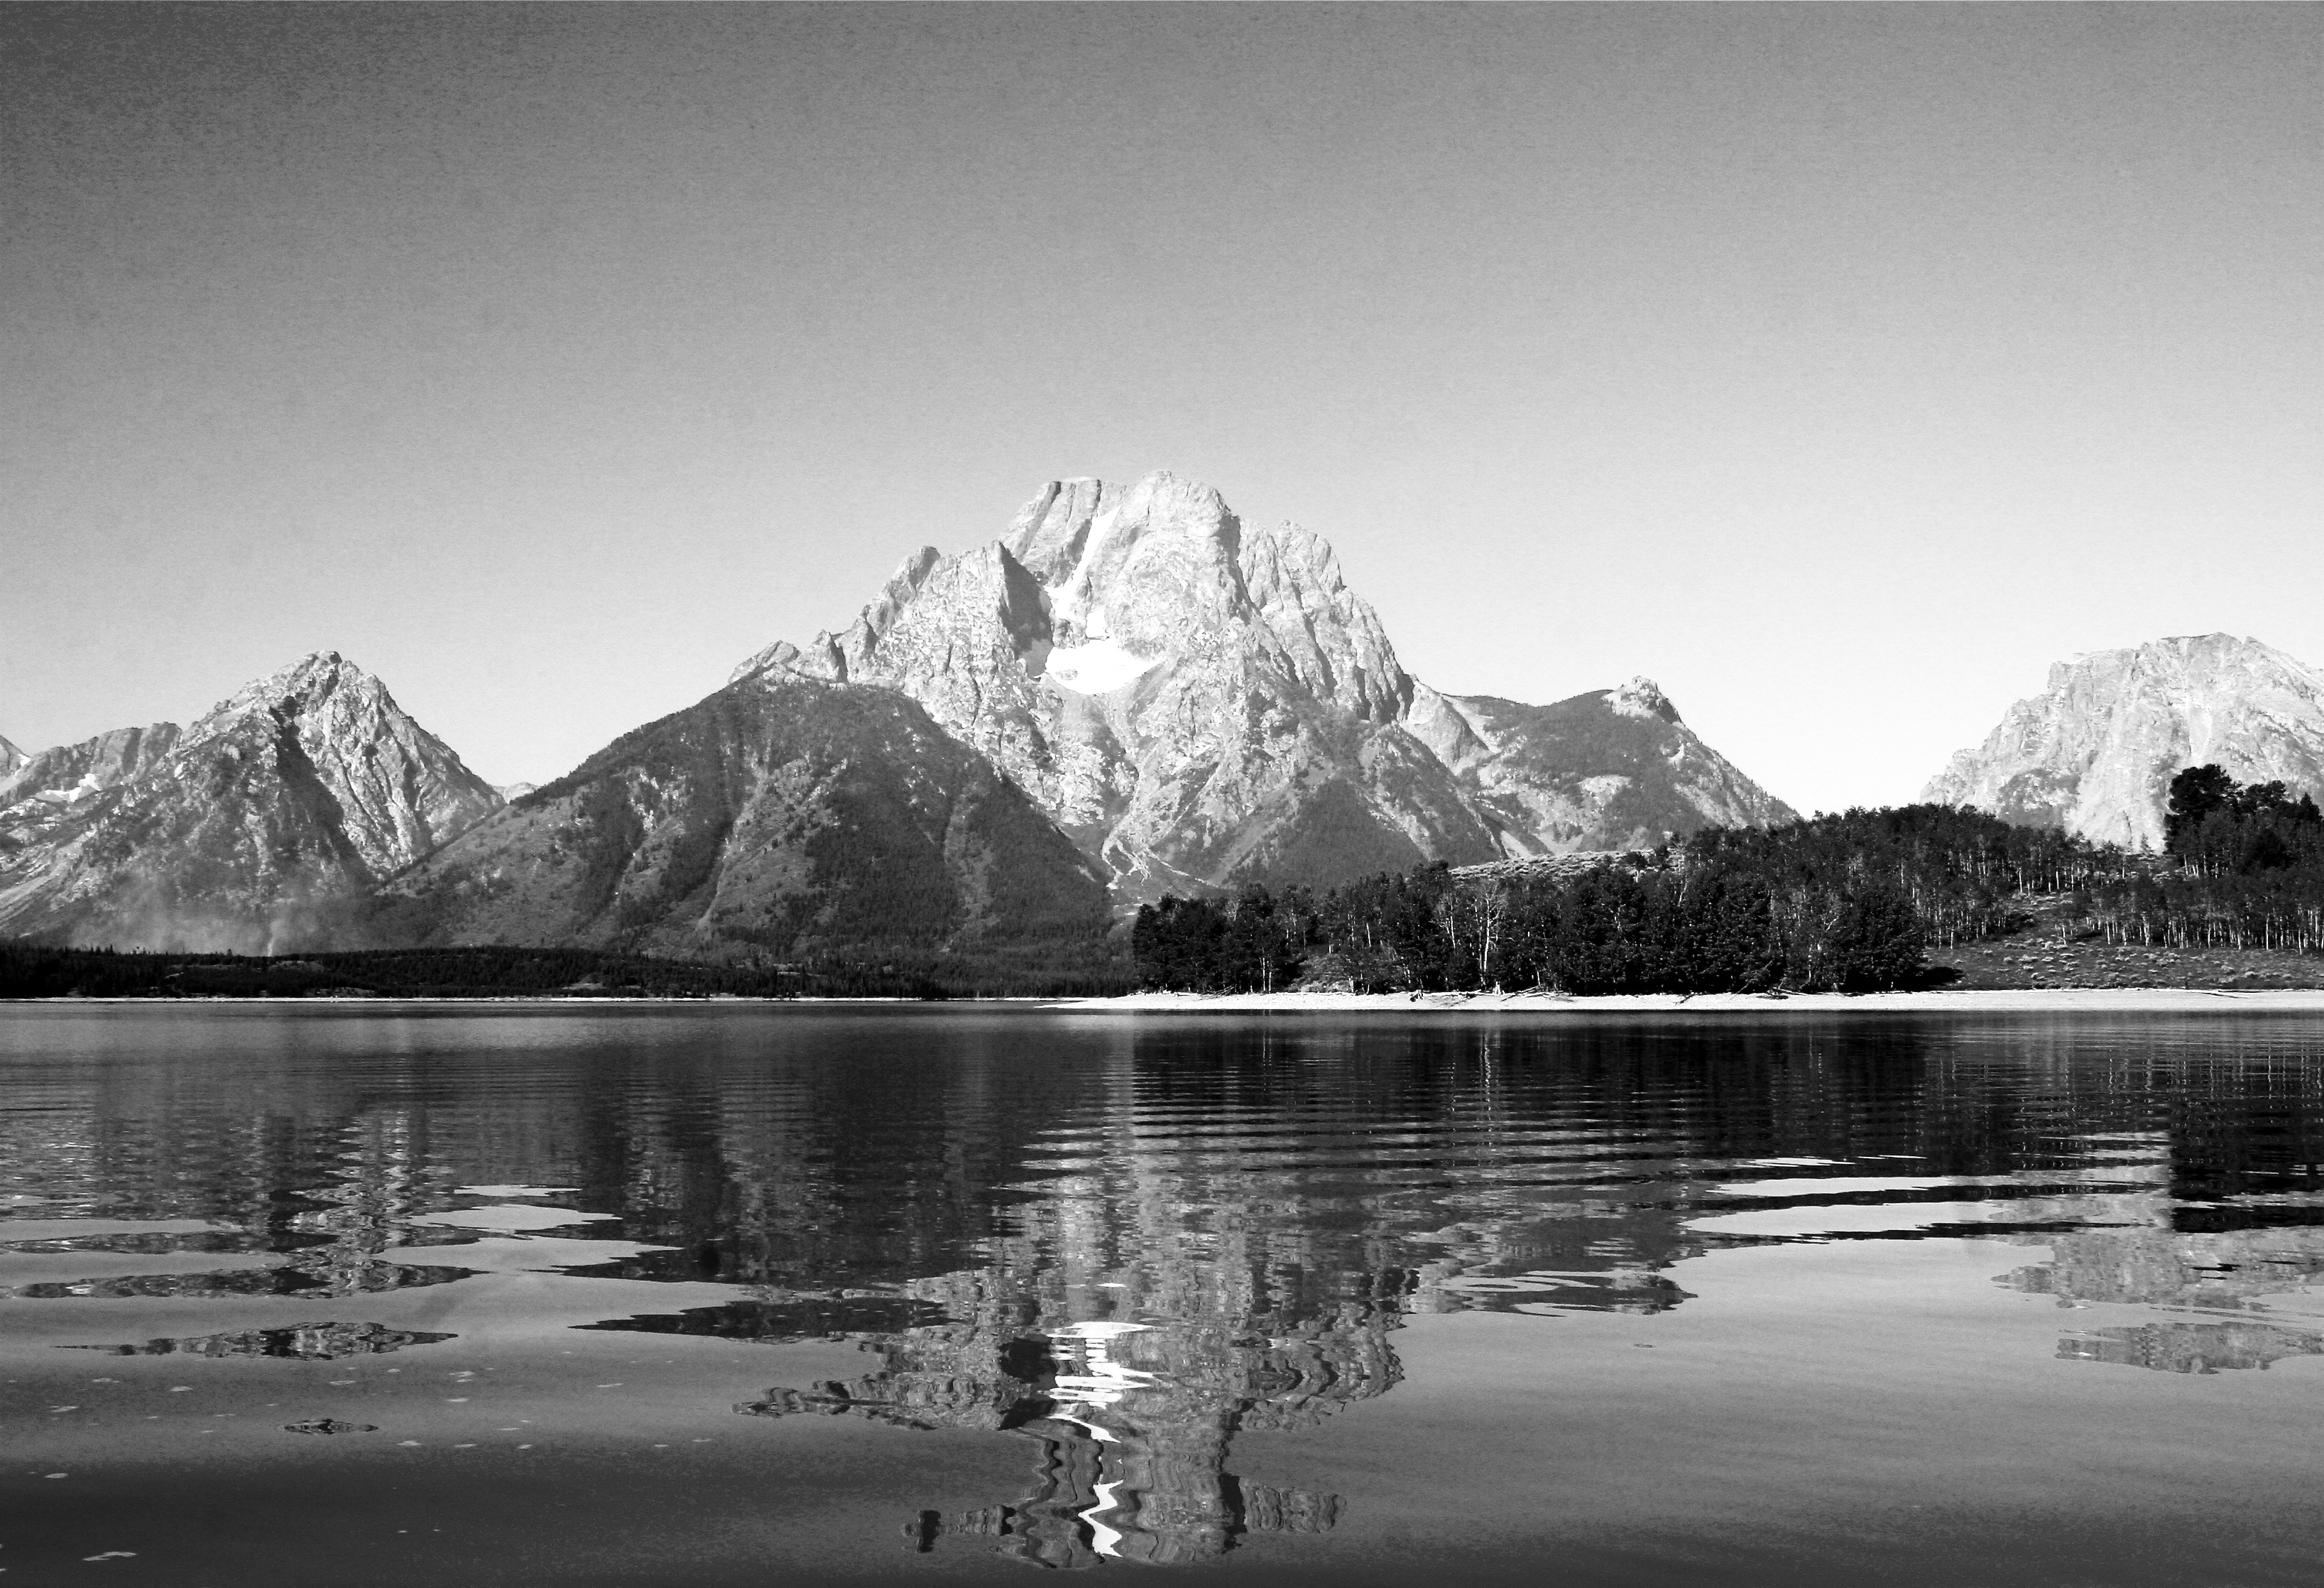 Mt. Moran and Jackson Lake